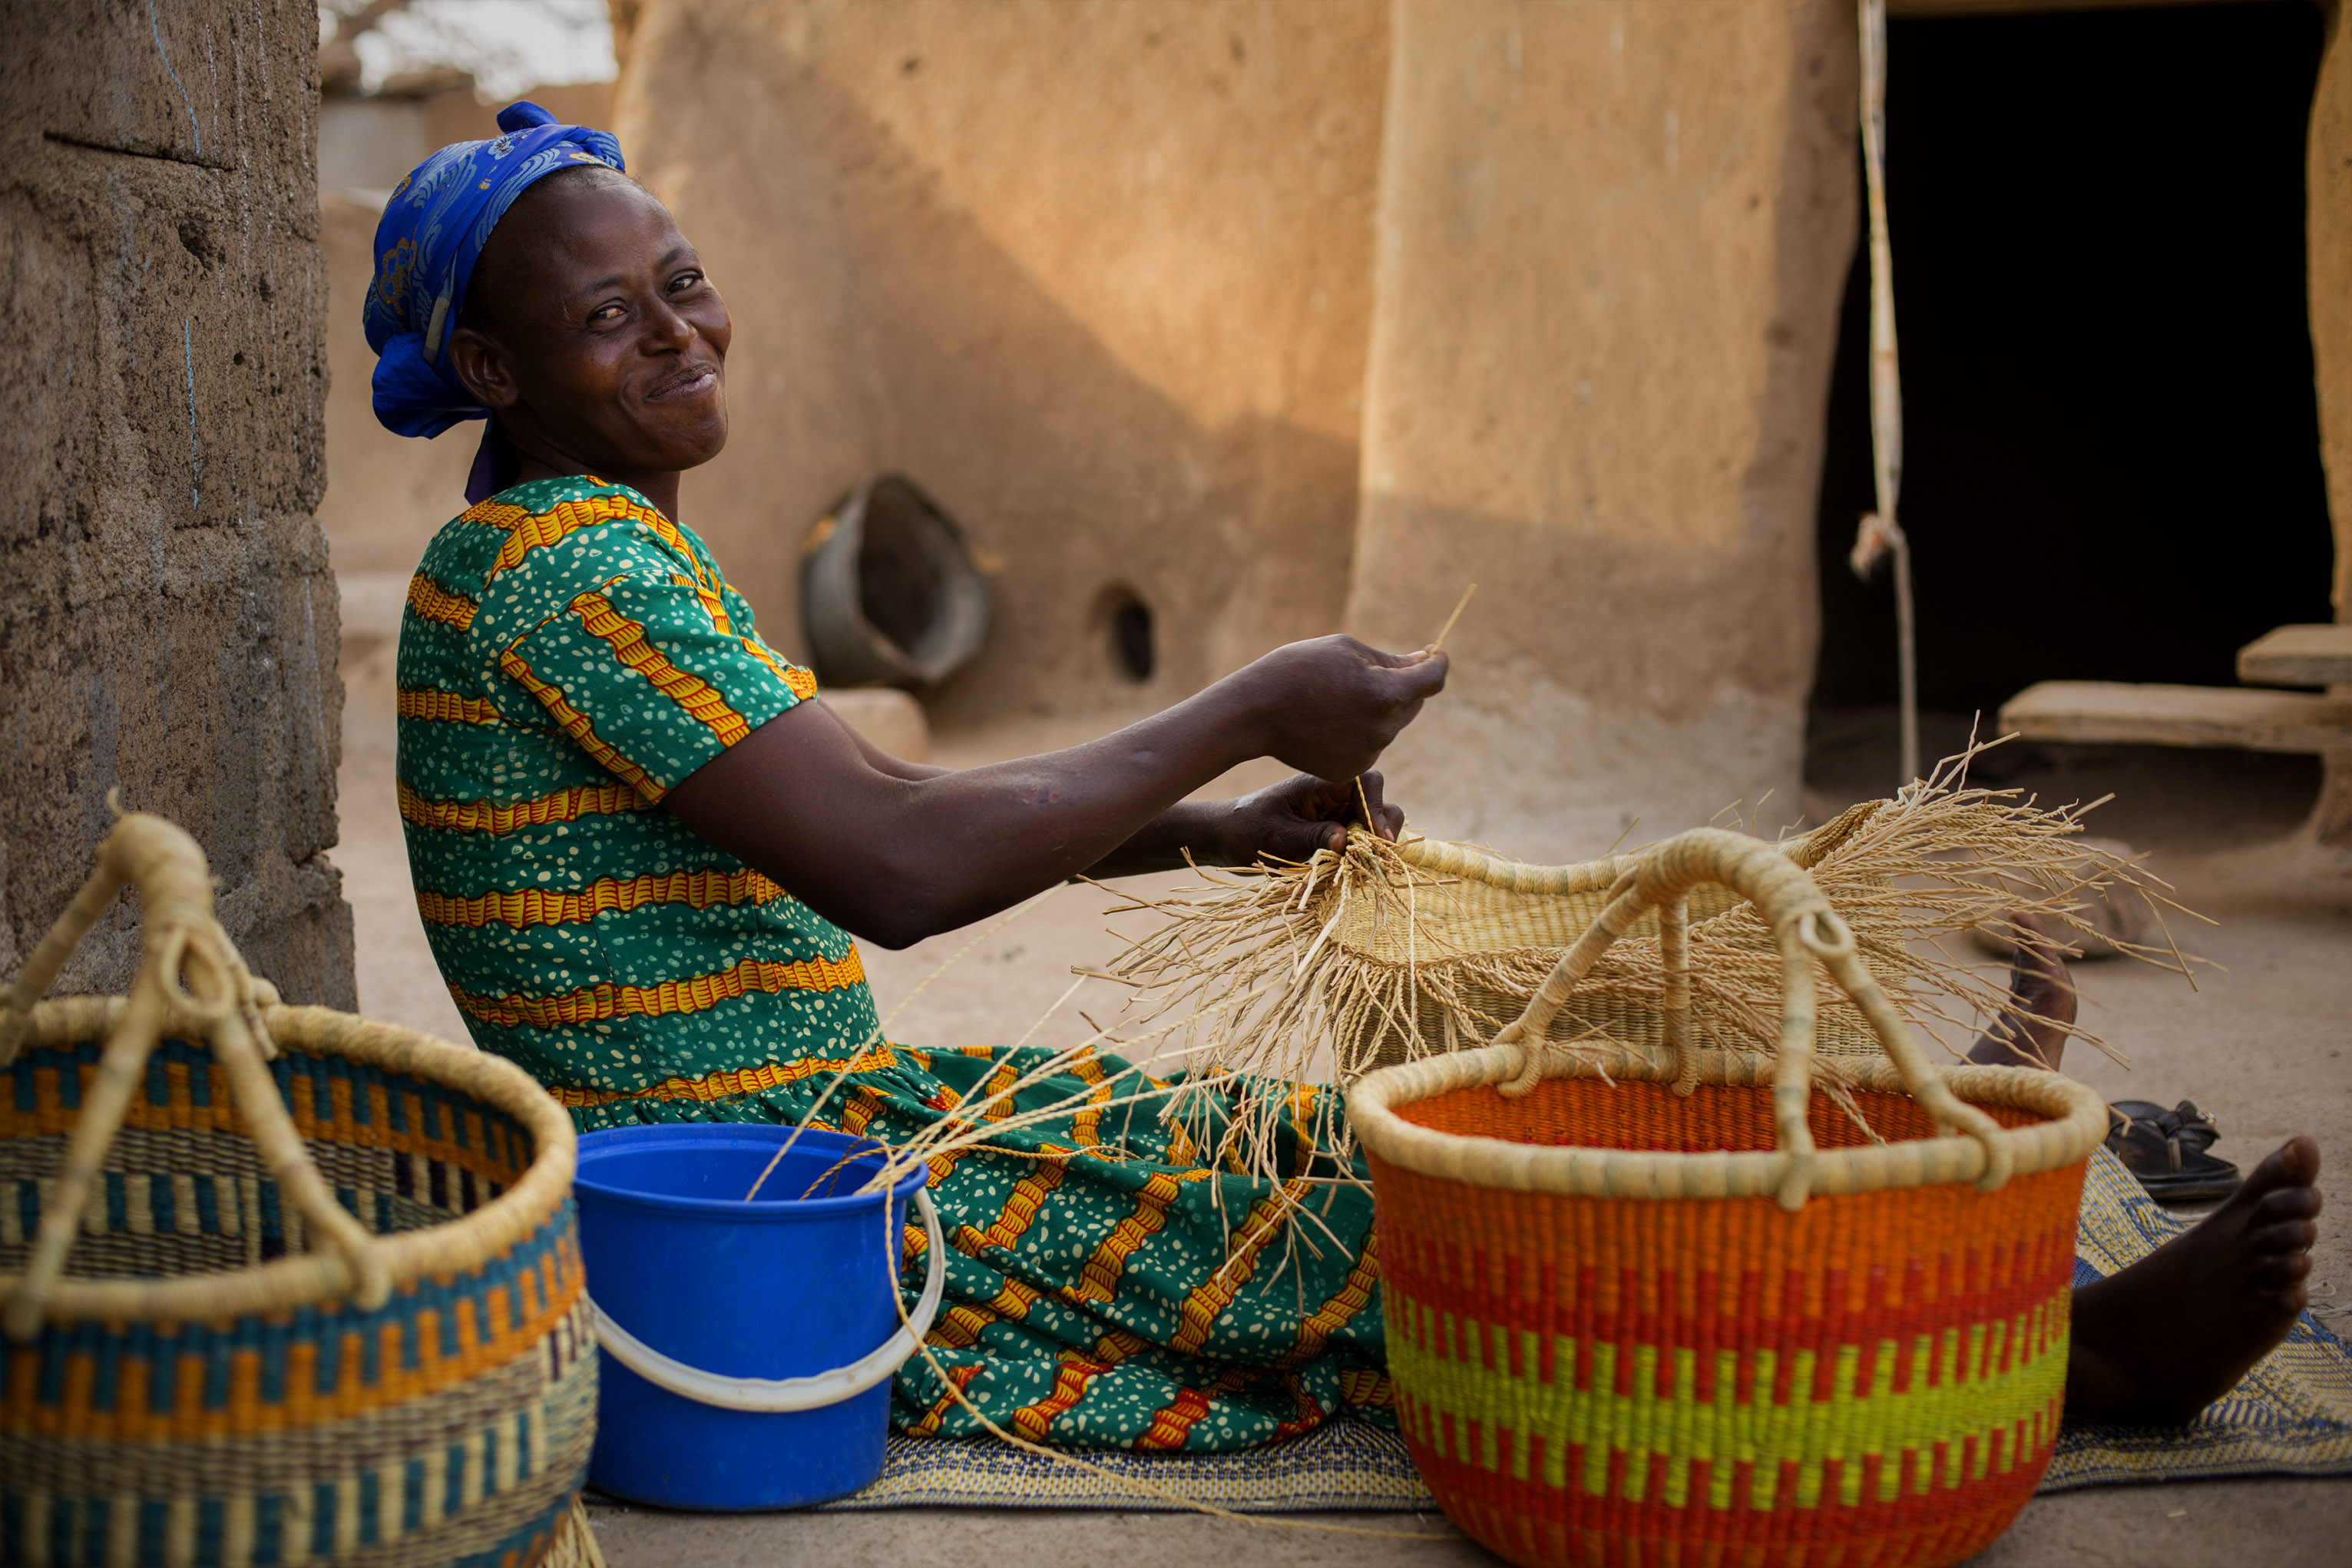 But thanks to a savings program, Nyaamah has a new dream: weaving straw baskets to sell to support her family. Photo by Jake Lyell for CRS